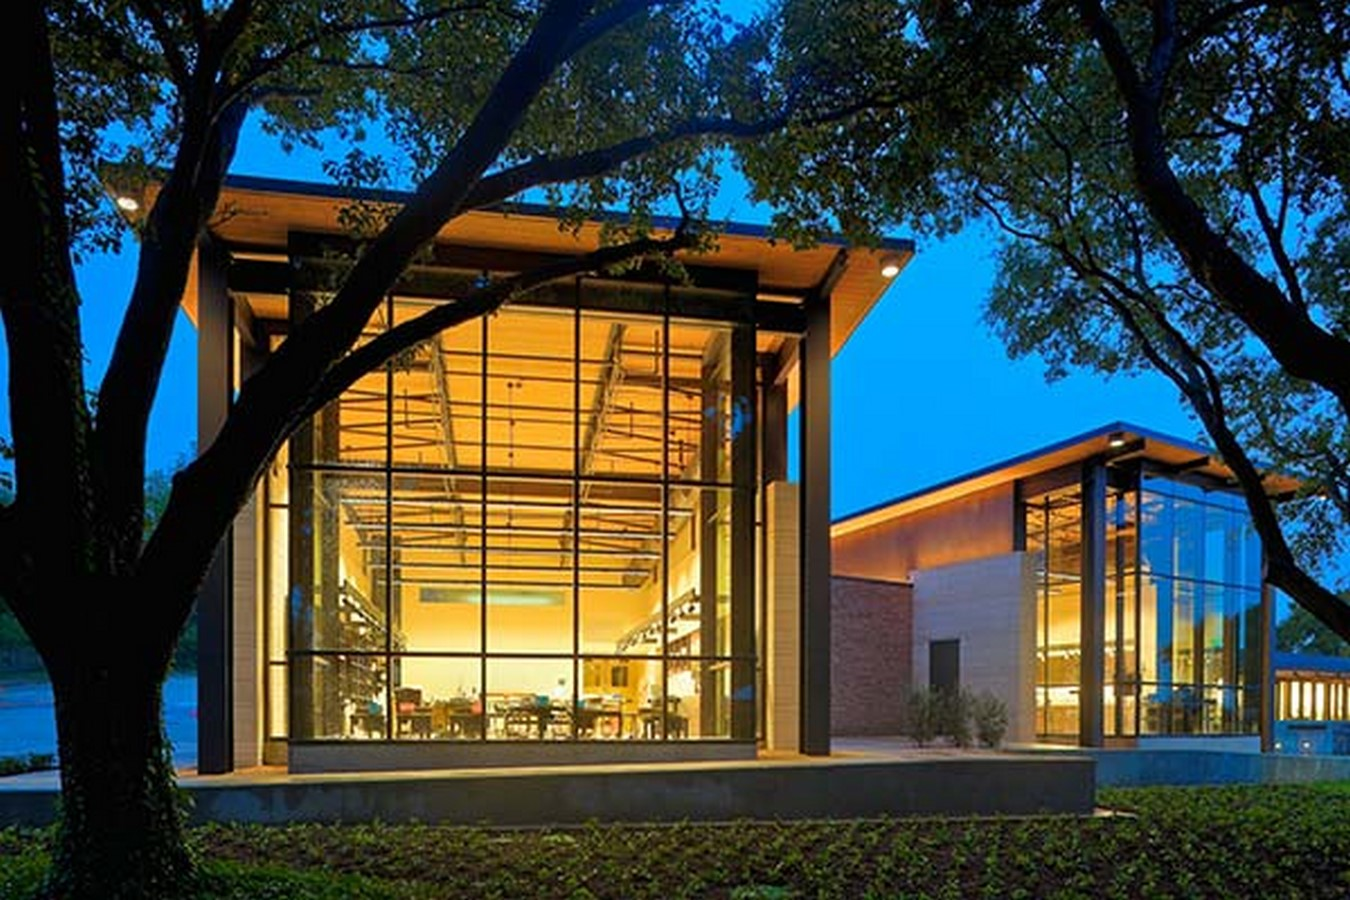 Architects in Fort Worth - Top 55 Architects in Fort Worth - Sheet8